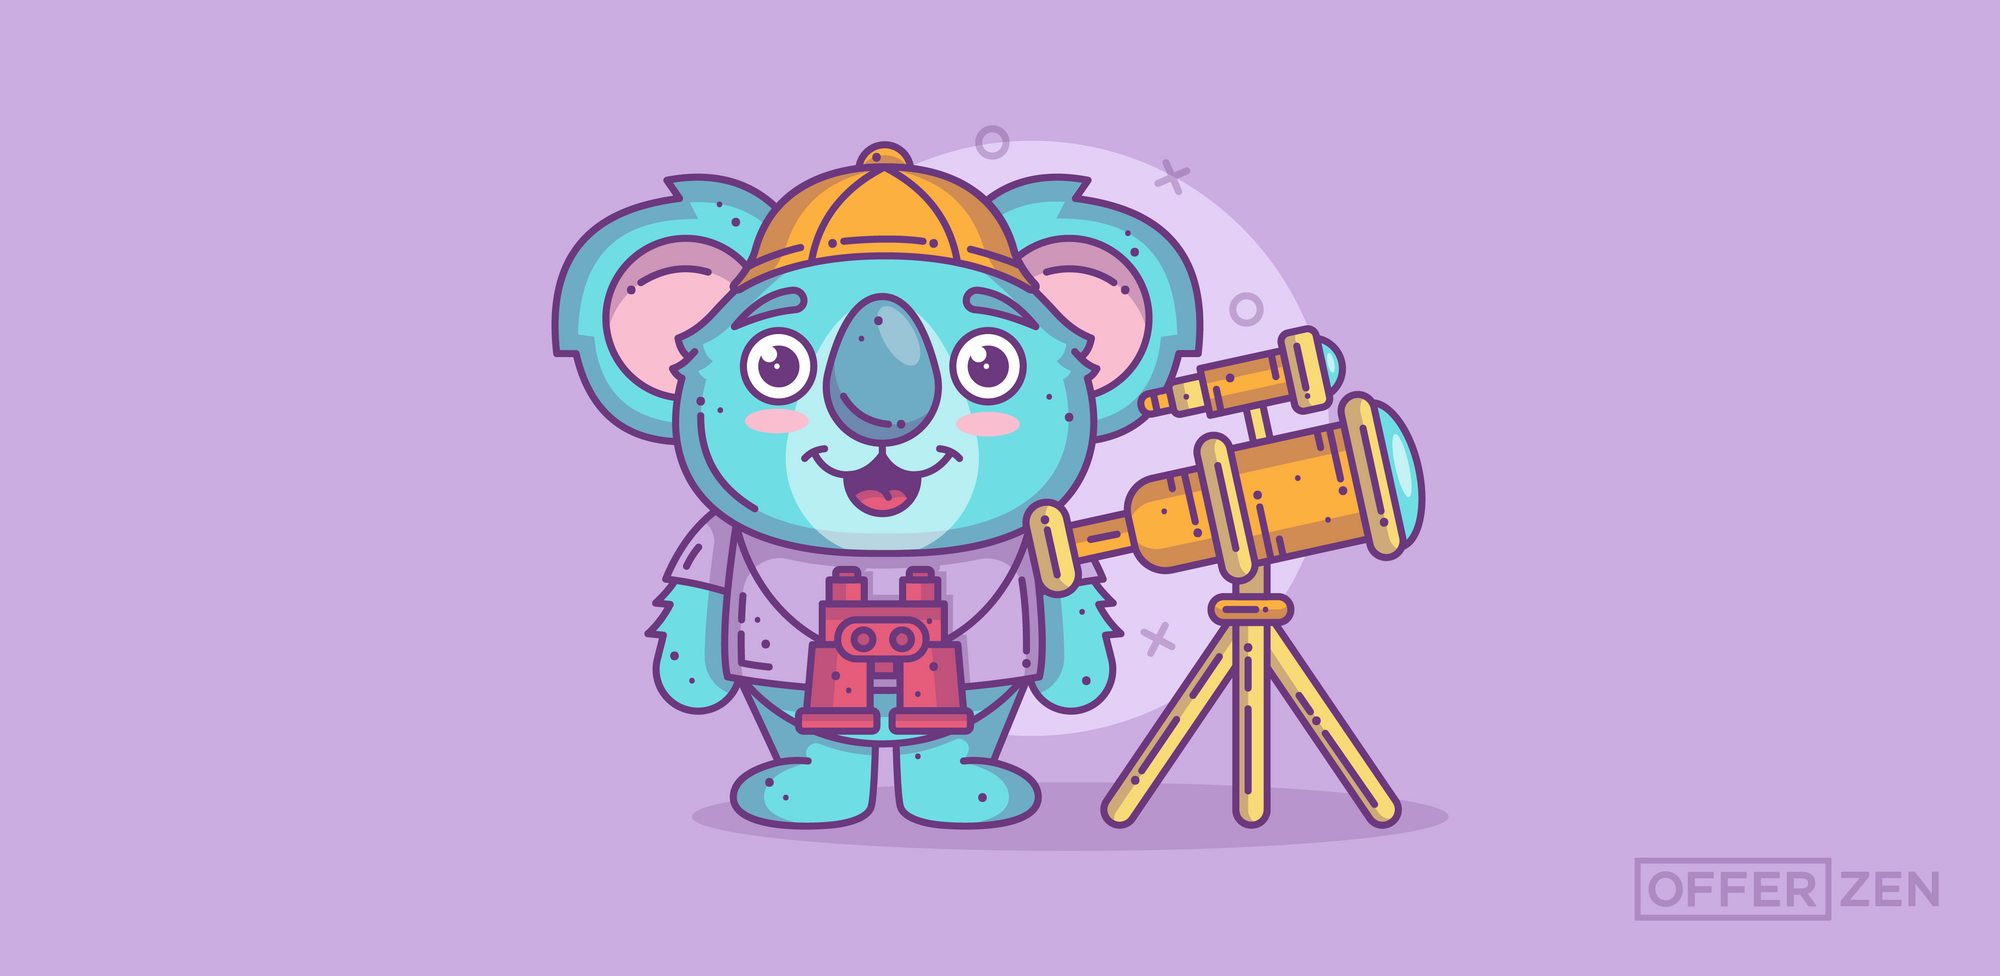 Rene_Koala-with-telescope_There-s-More-to-a--Good--Job-Than-Just-Money---Here-s-What-I-ve-Learnt_Inner-Article-Image-02